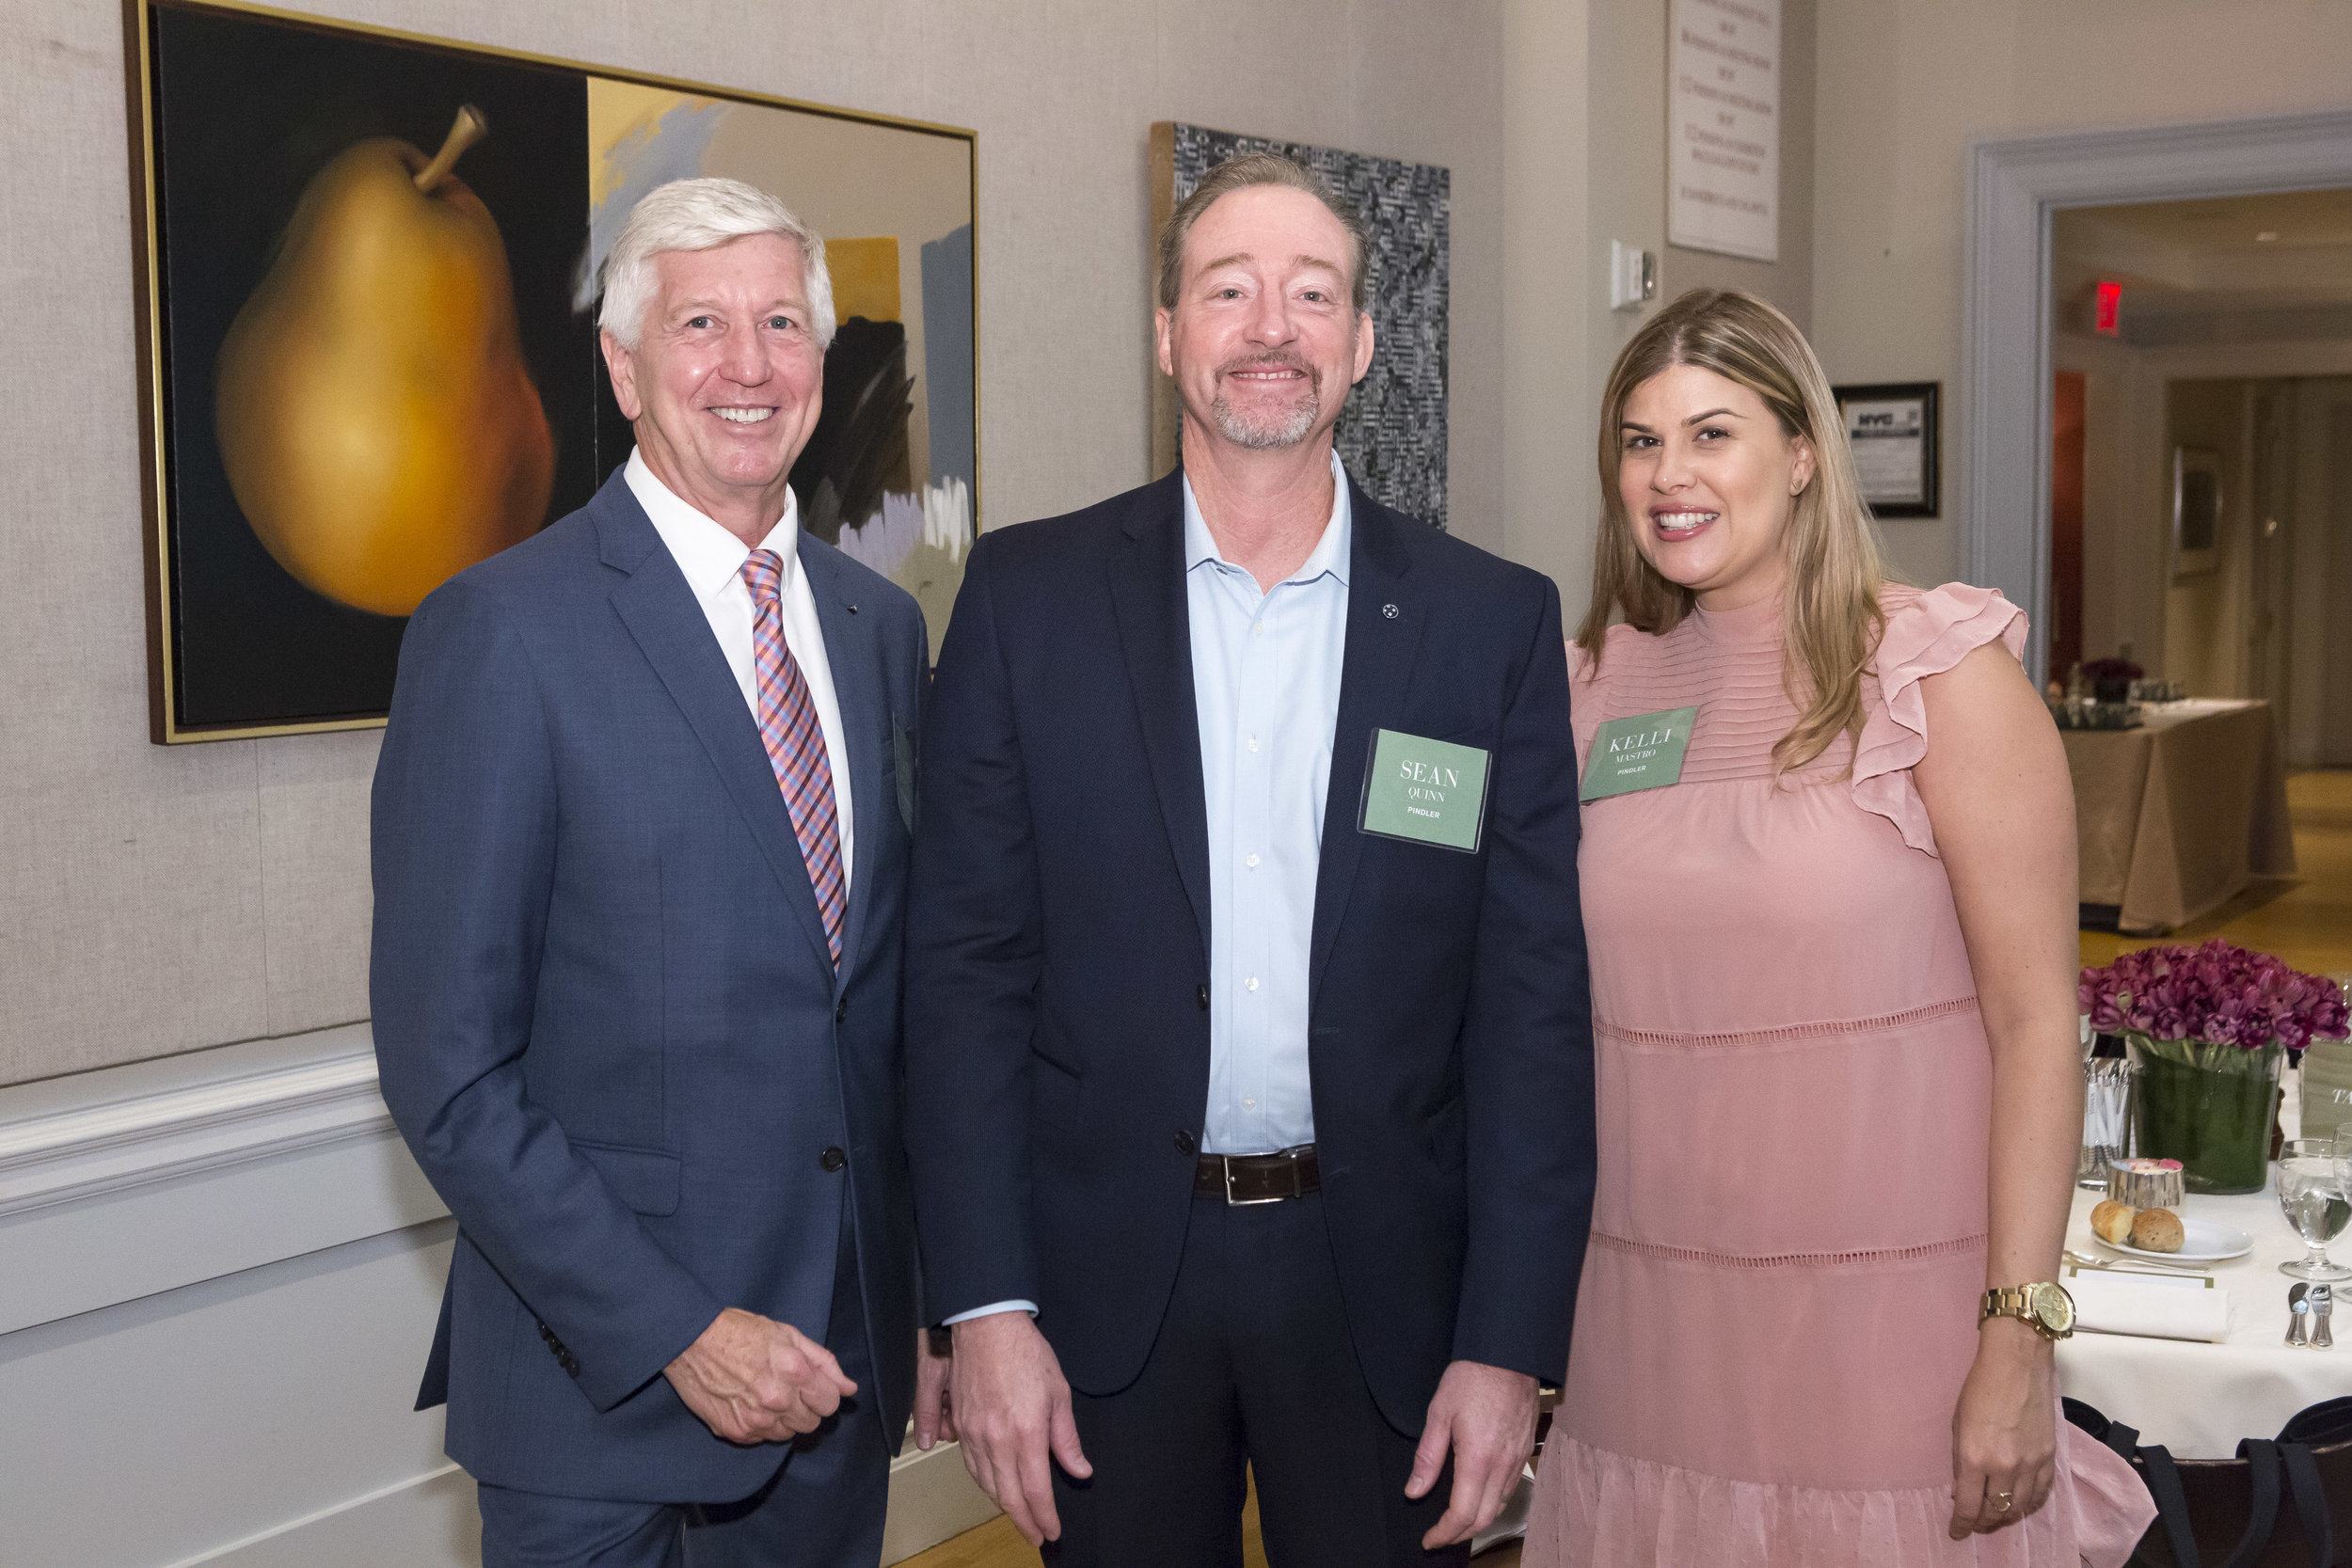 Benjamin Moore's Carl Minchew, and Pindler's Sean Quinn, and Kelli Mastro